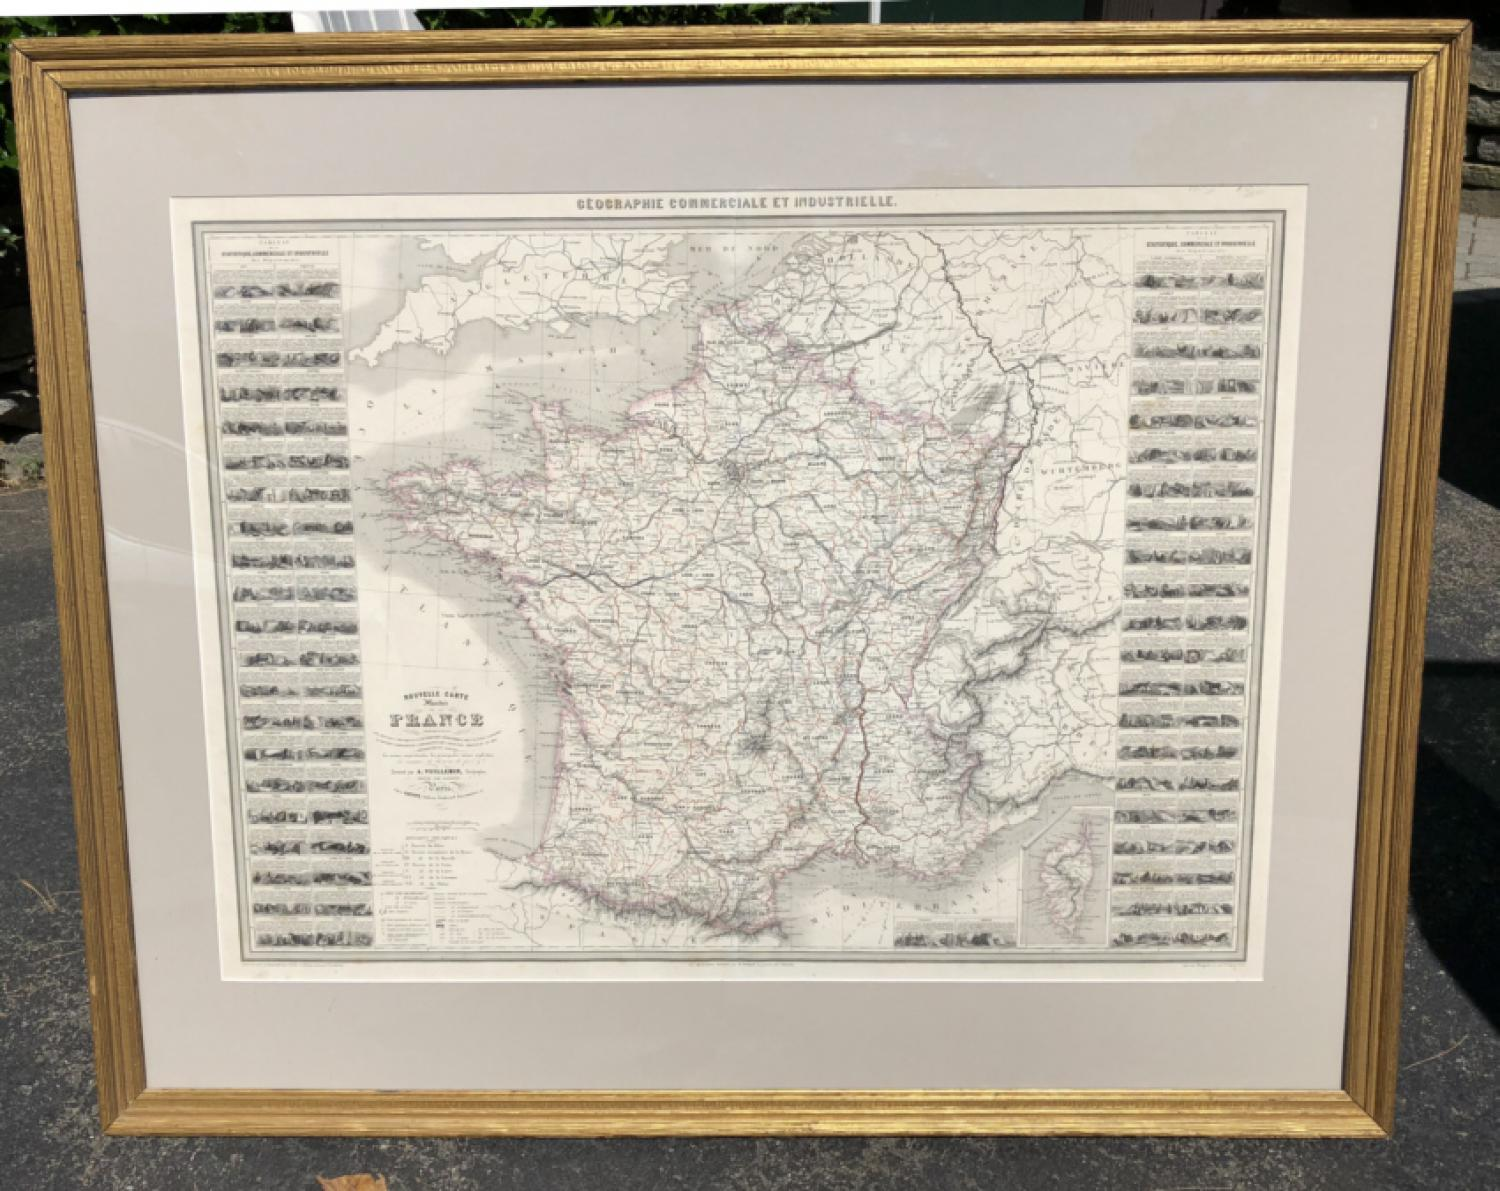 1857 map of  France